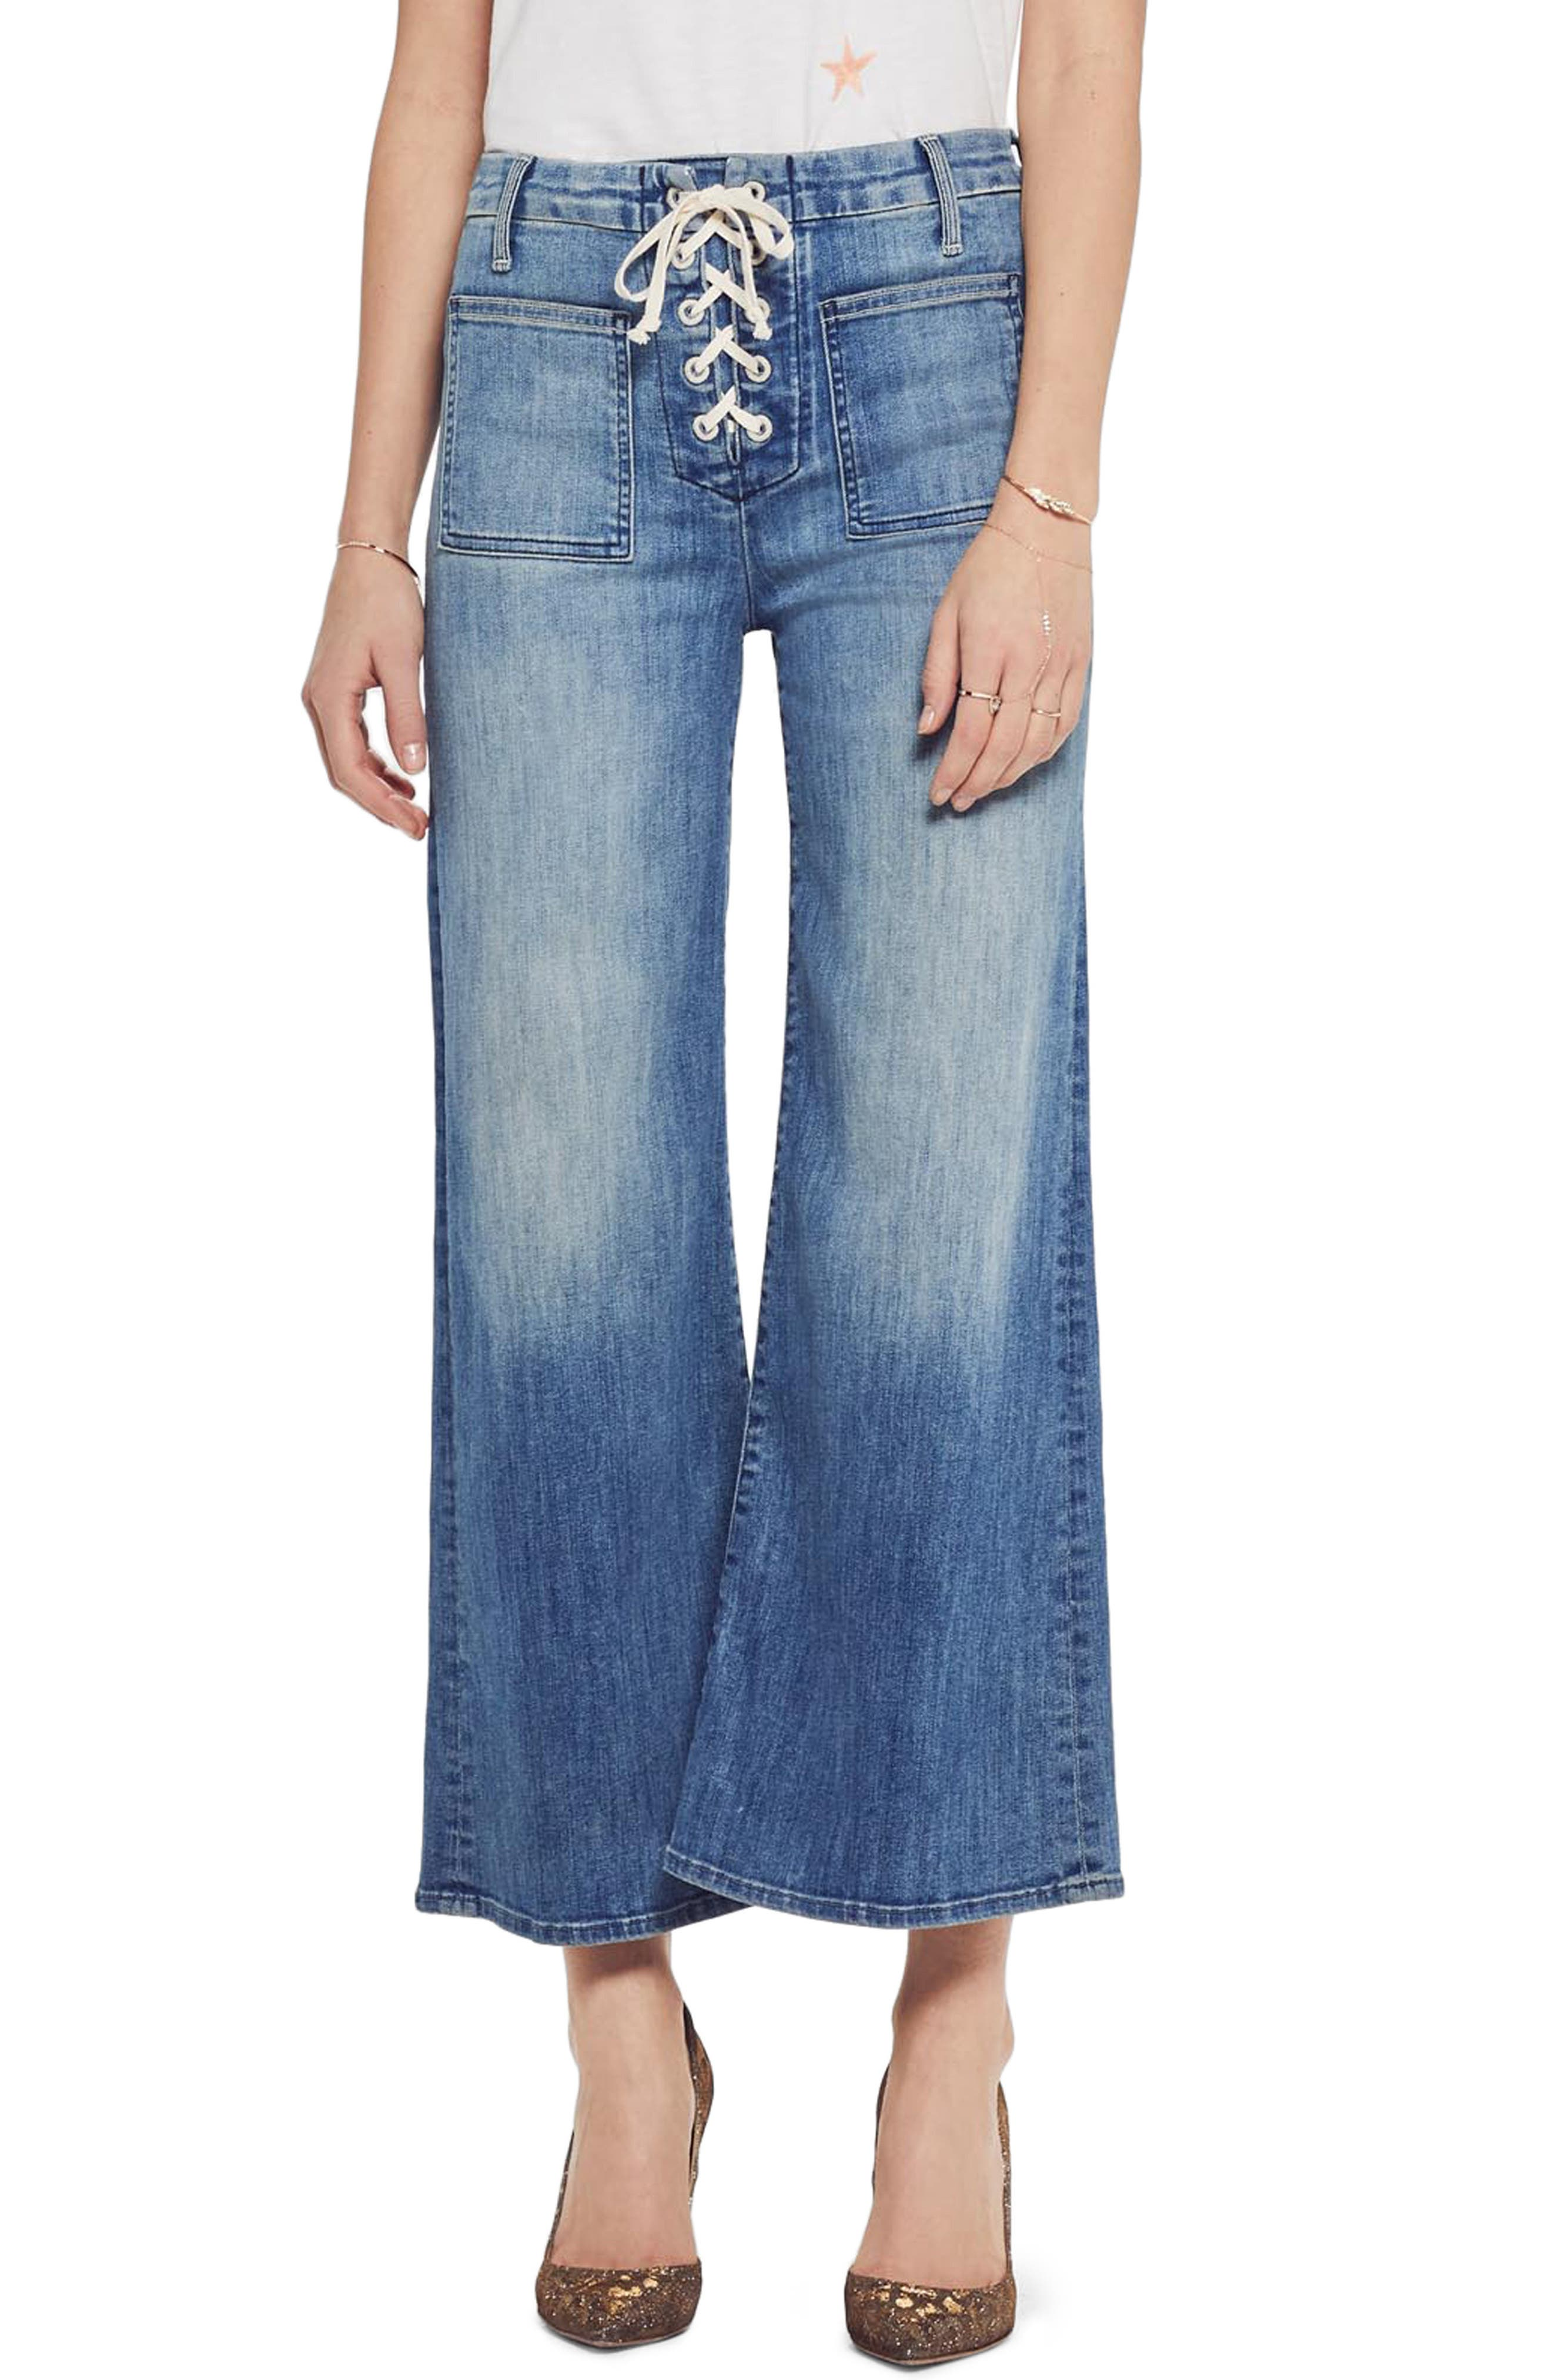 MOTHER, The Lace Up Crop Flare Jeans, Main thumbnail 1, color, WHERE THERES SMOKE